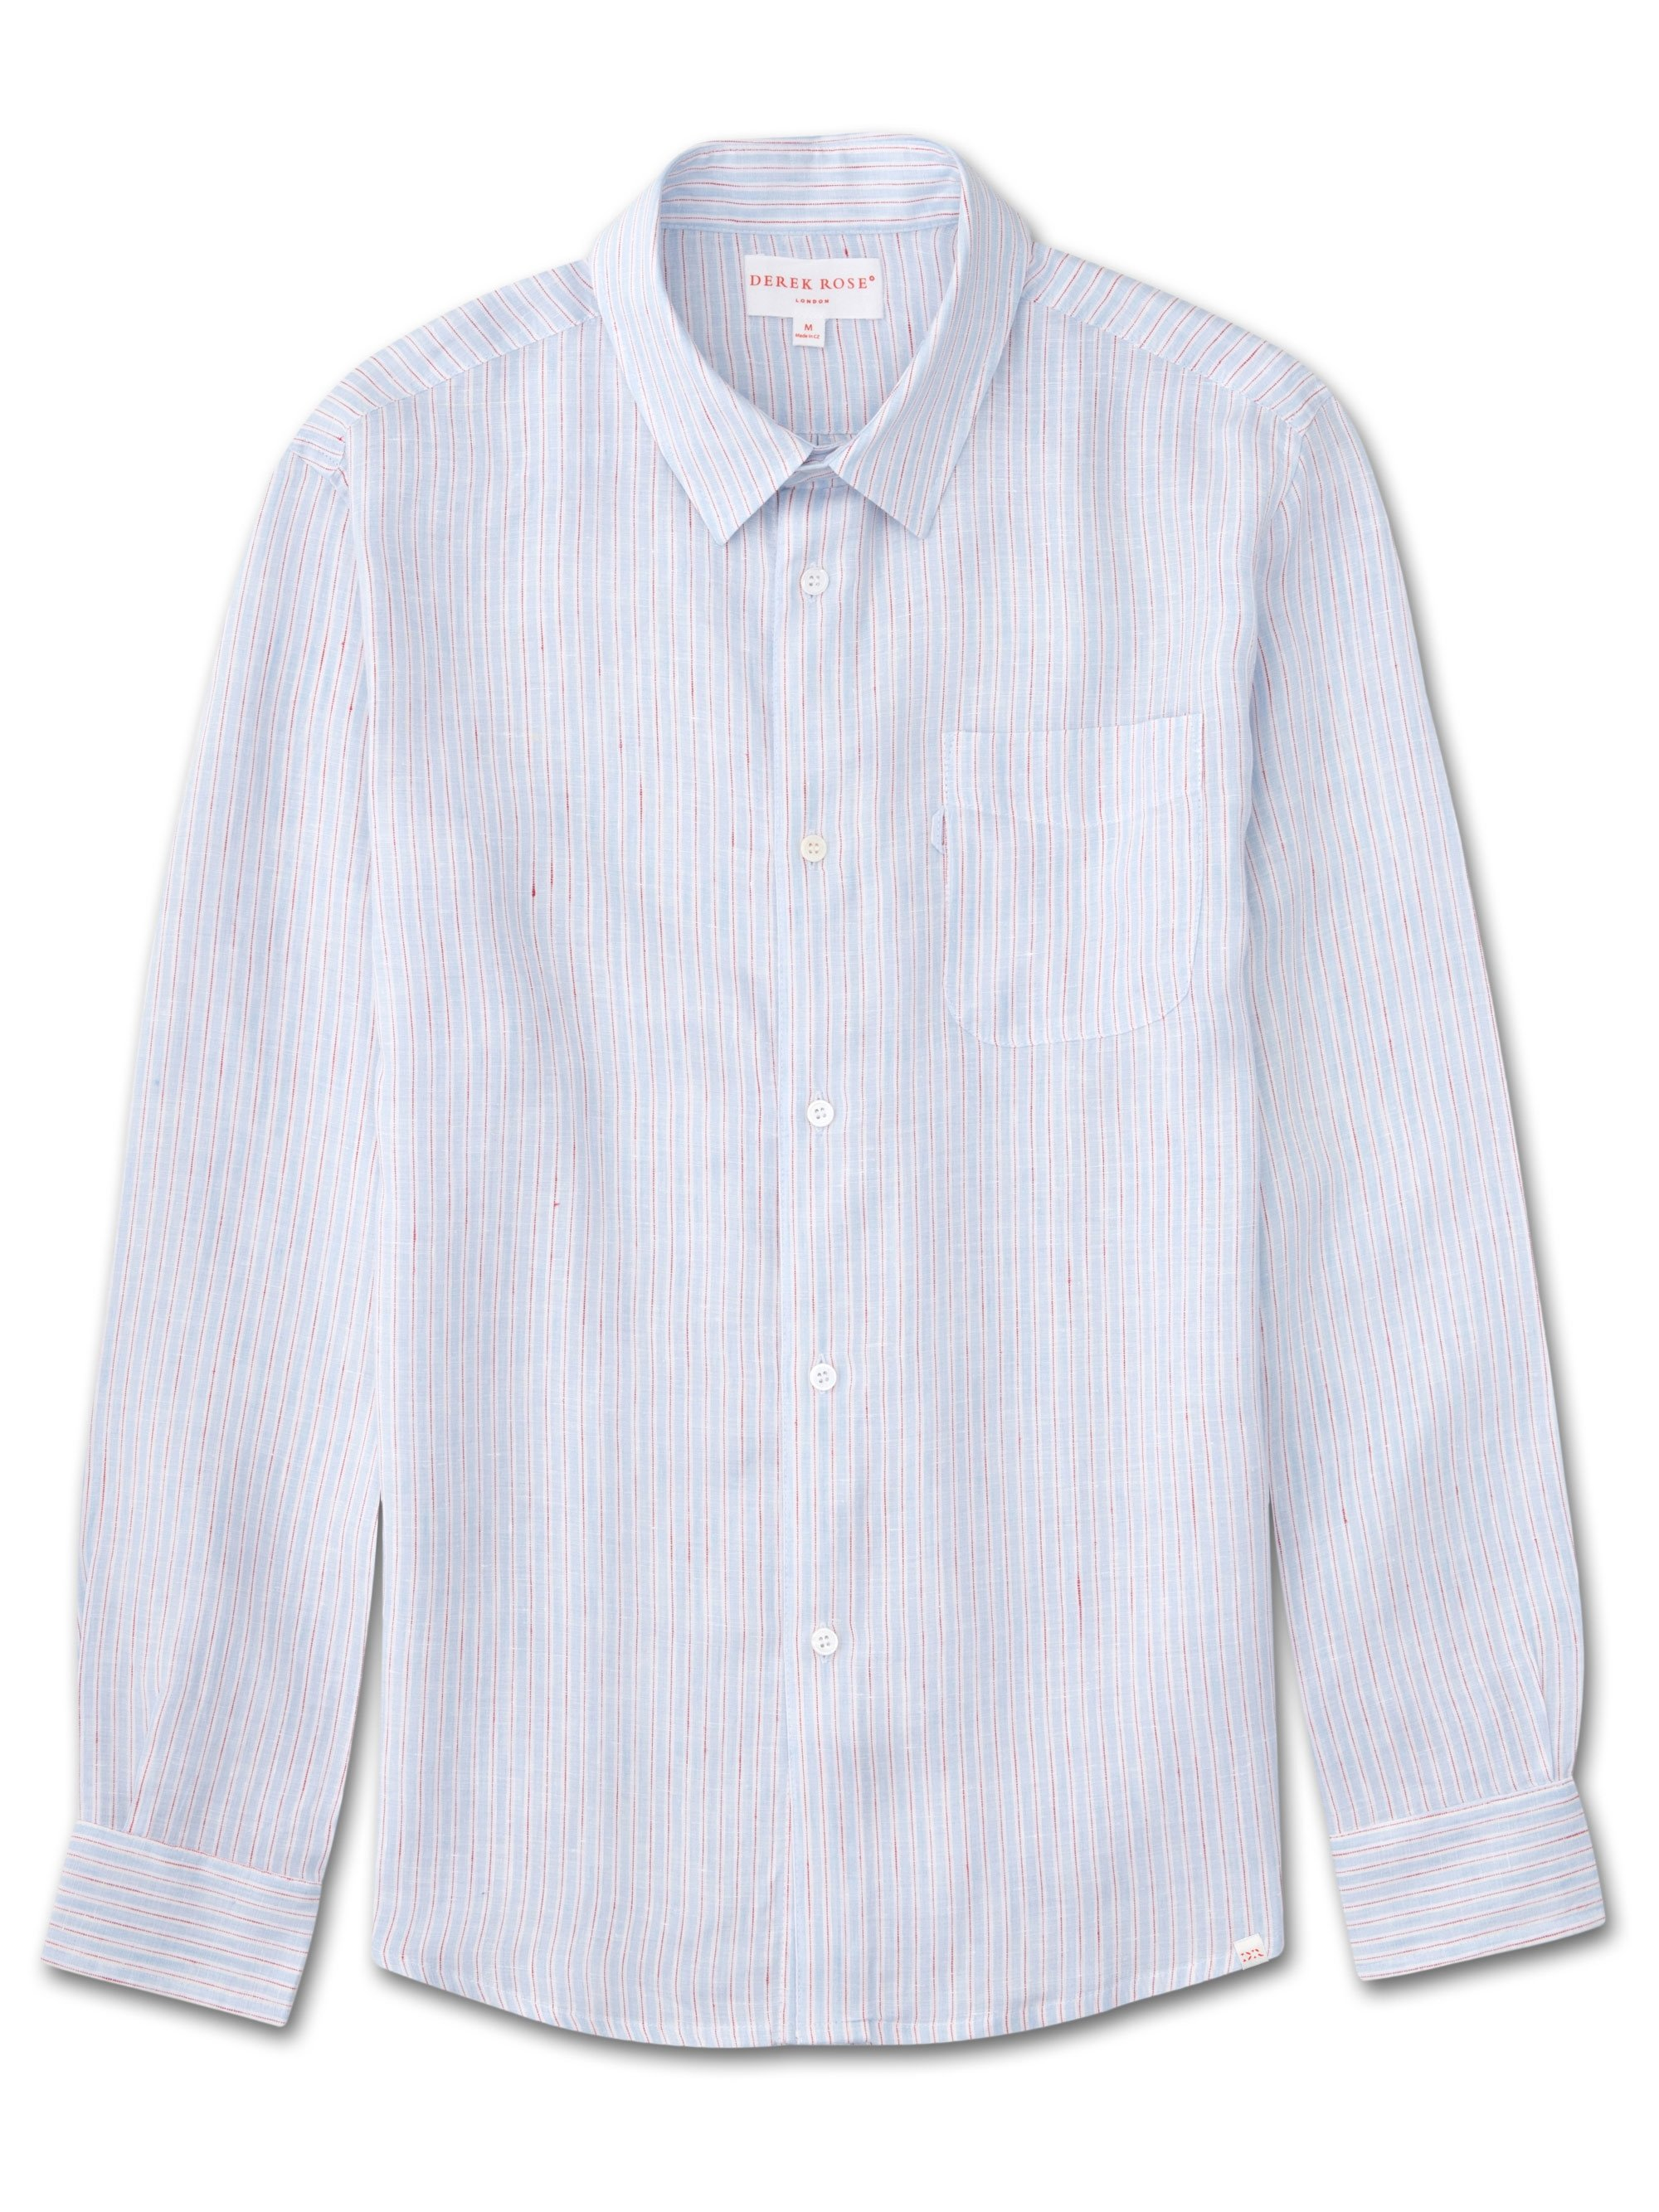 Men's Linen Shirt Malibu Linen Blue